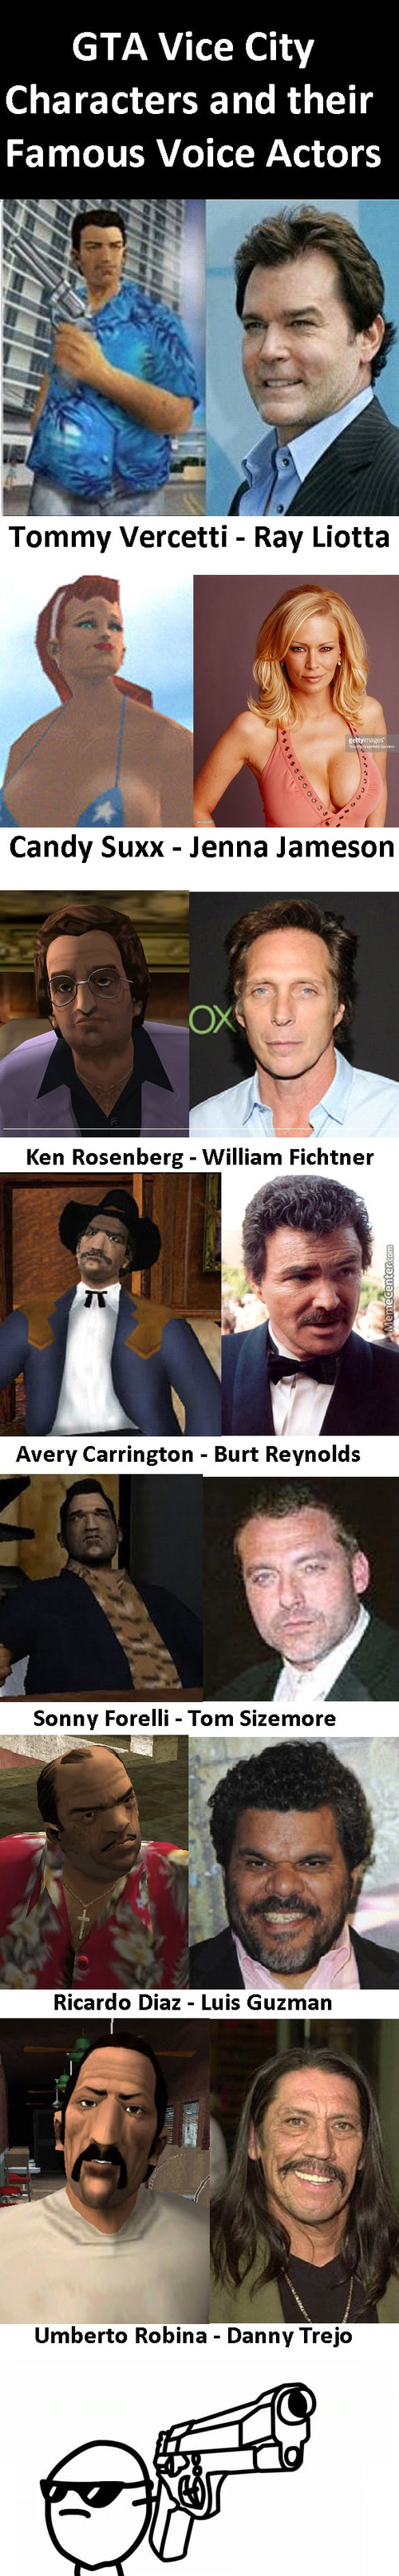 Vice City Voice Actors